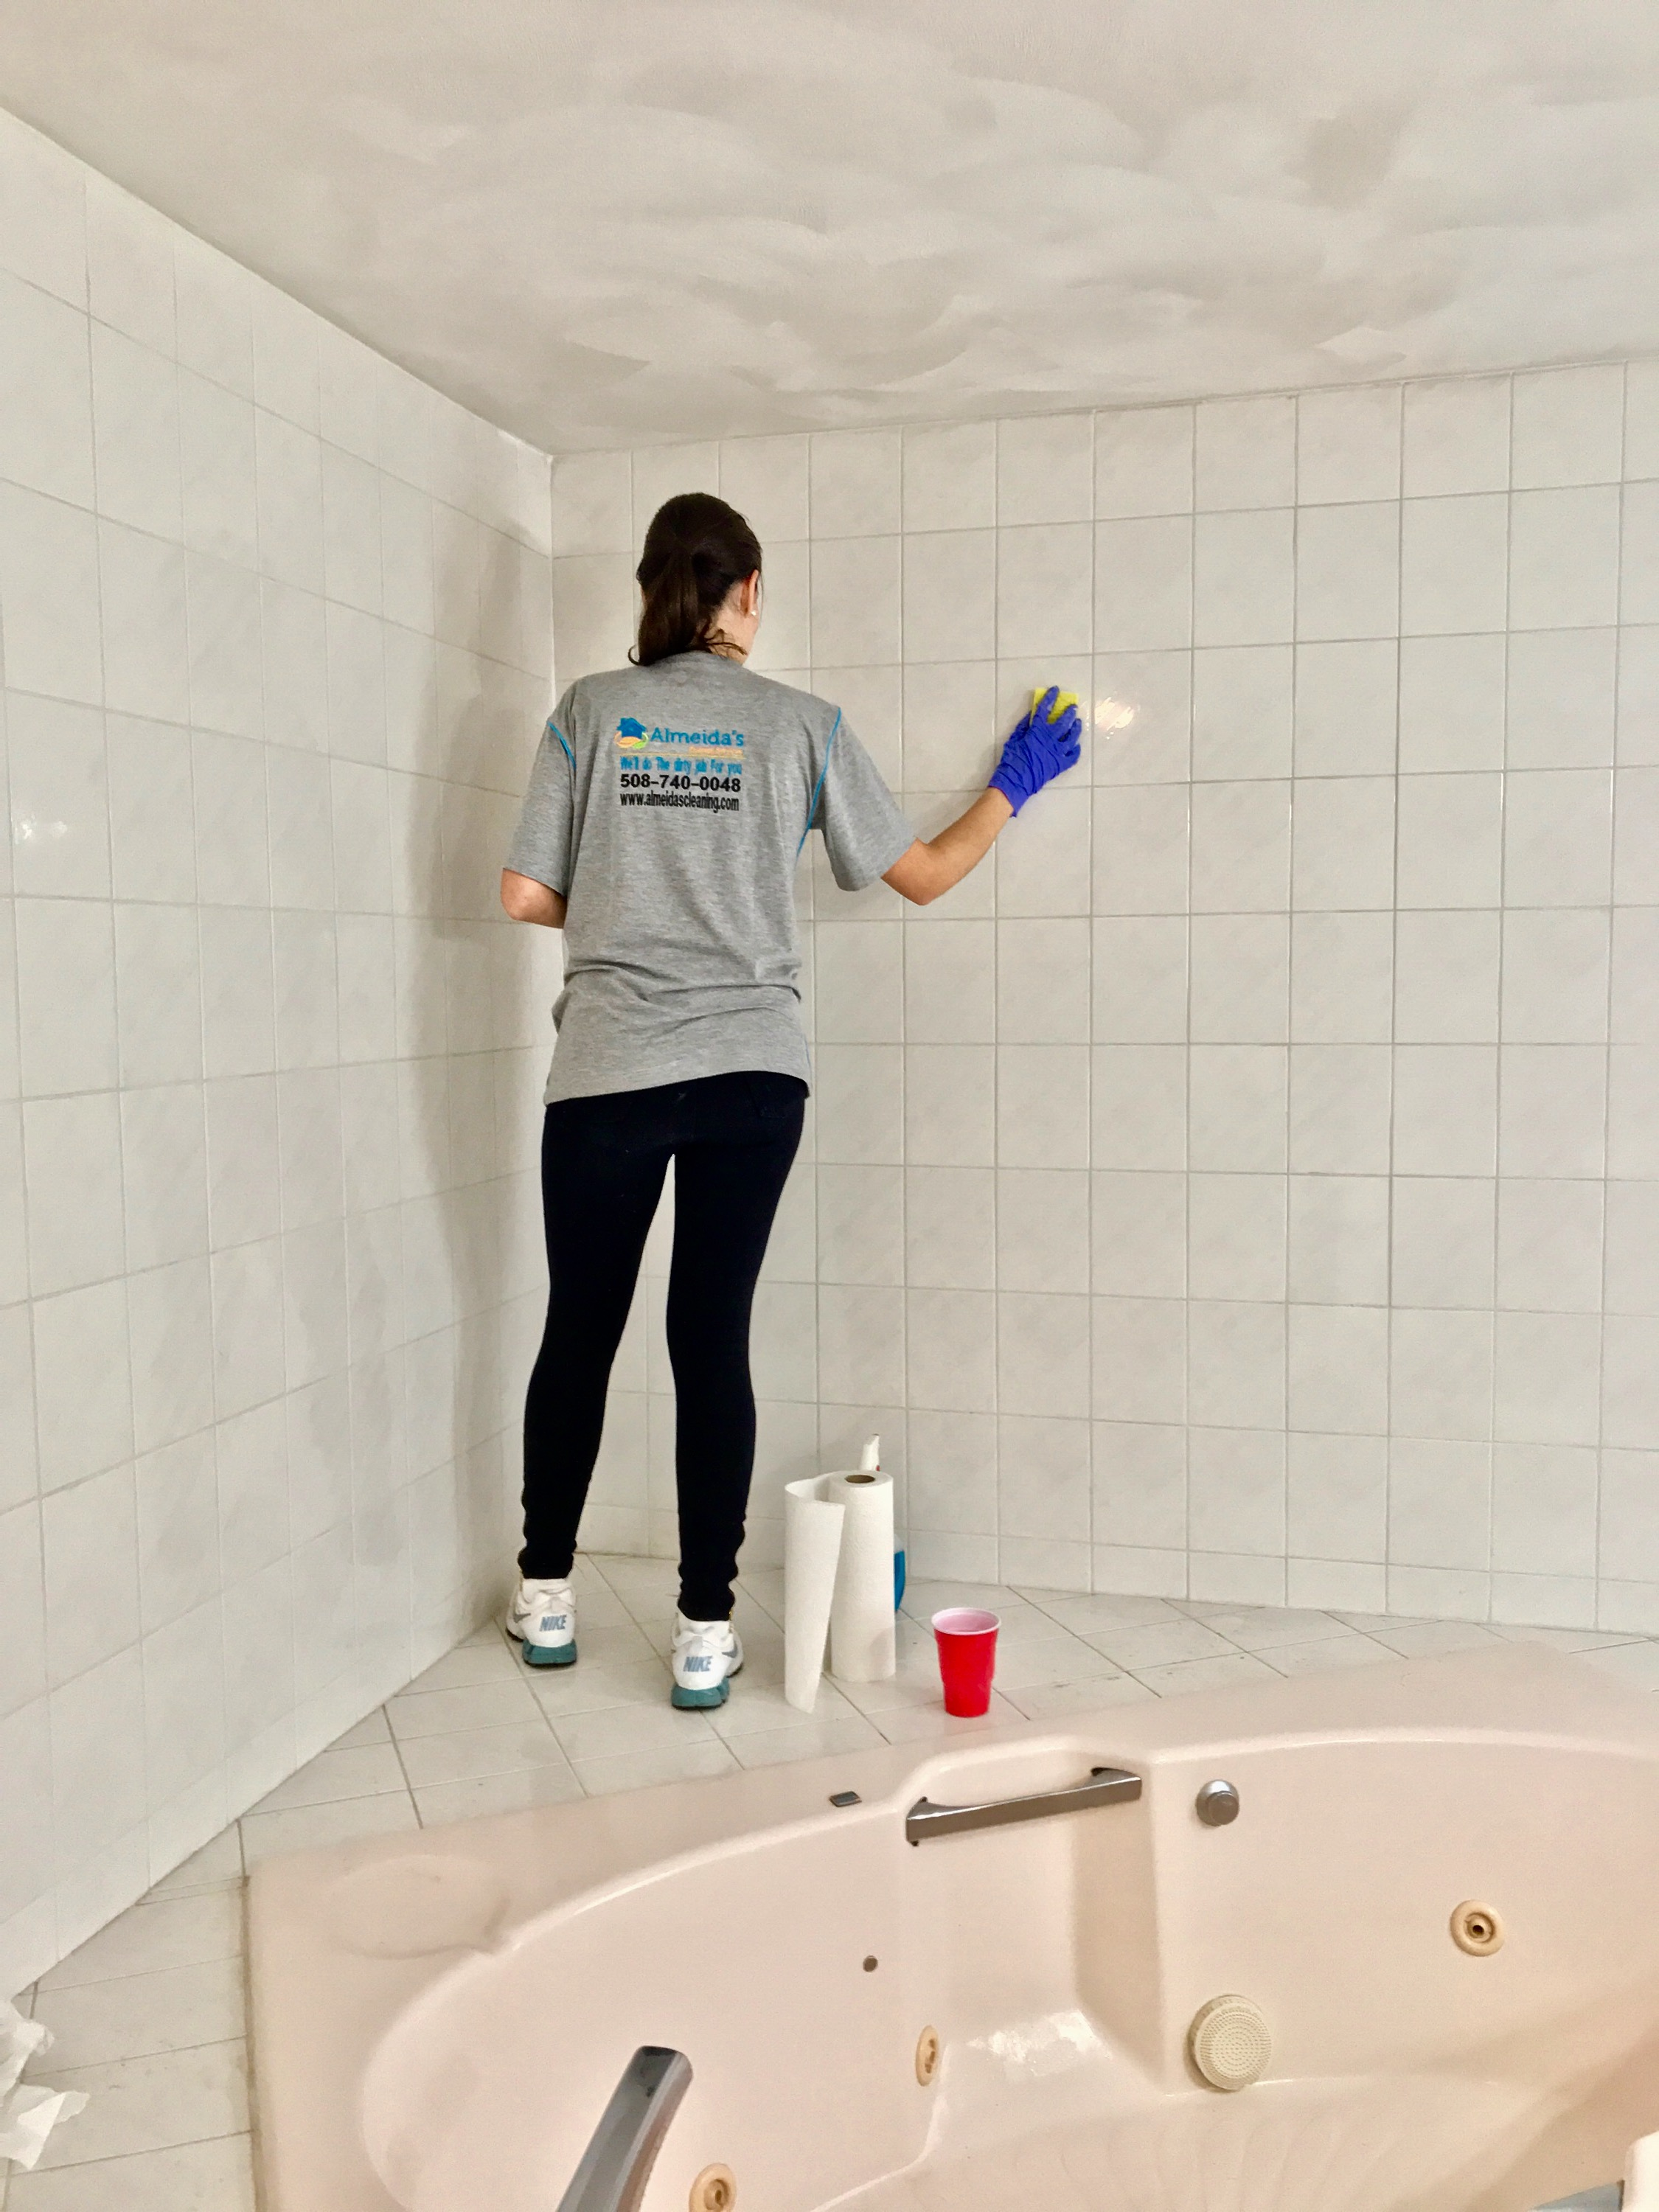 House Cleaning Jobs Almeidas Cleaning Services